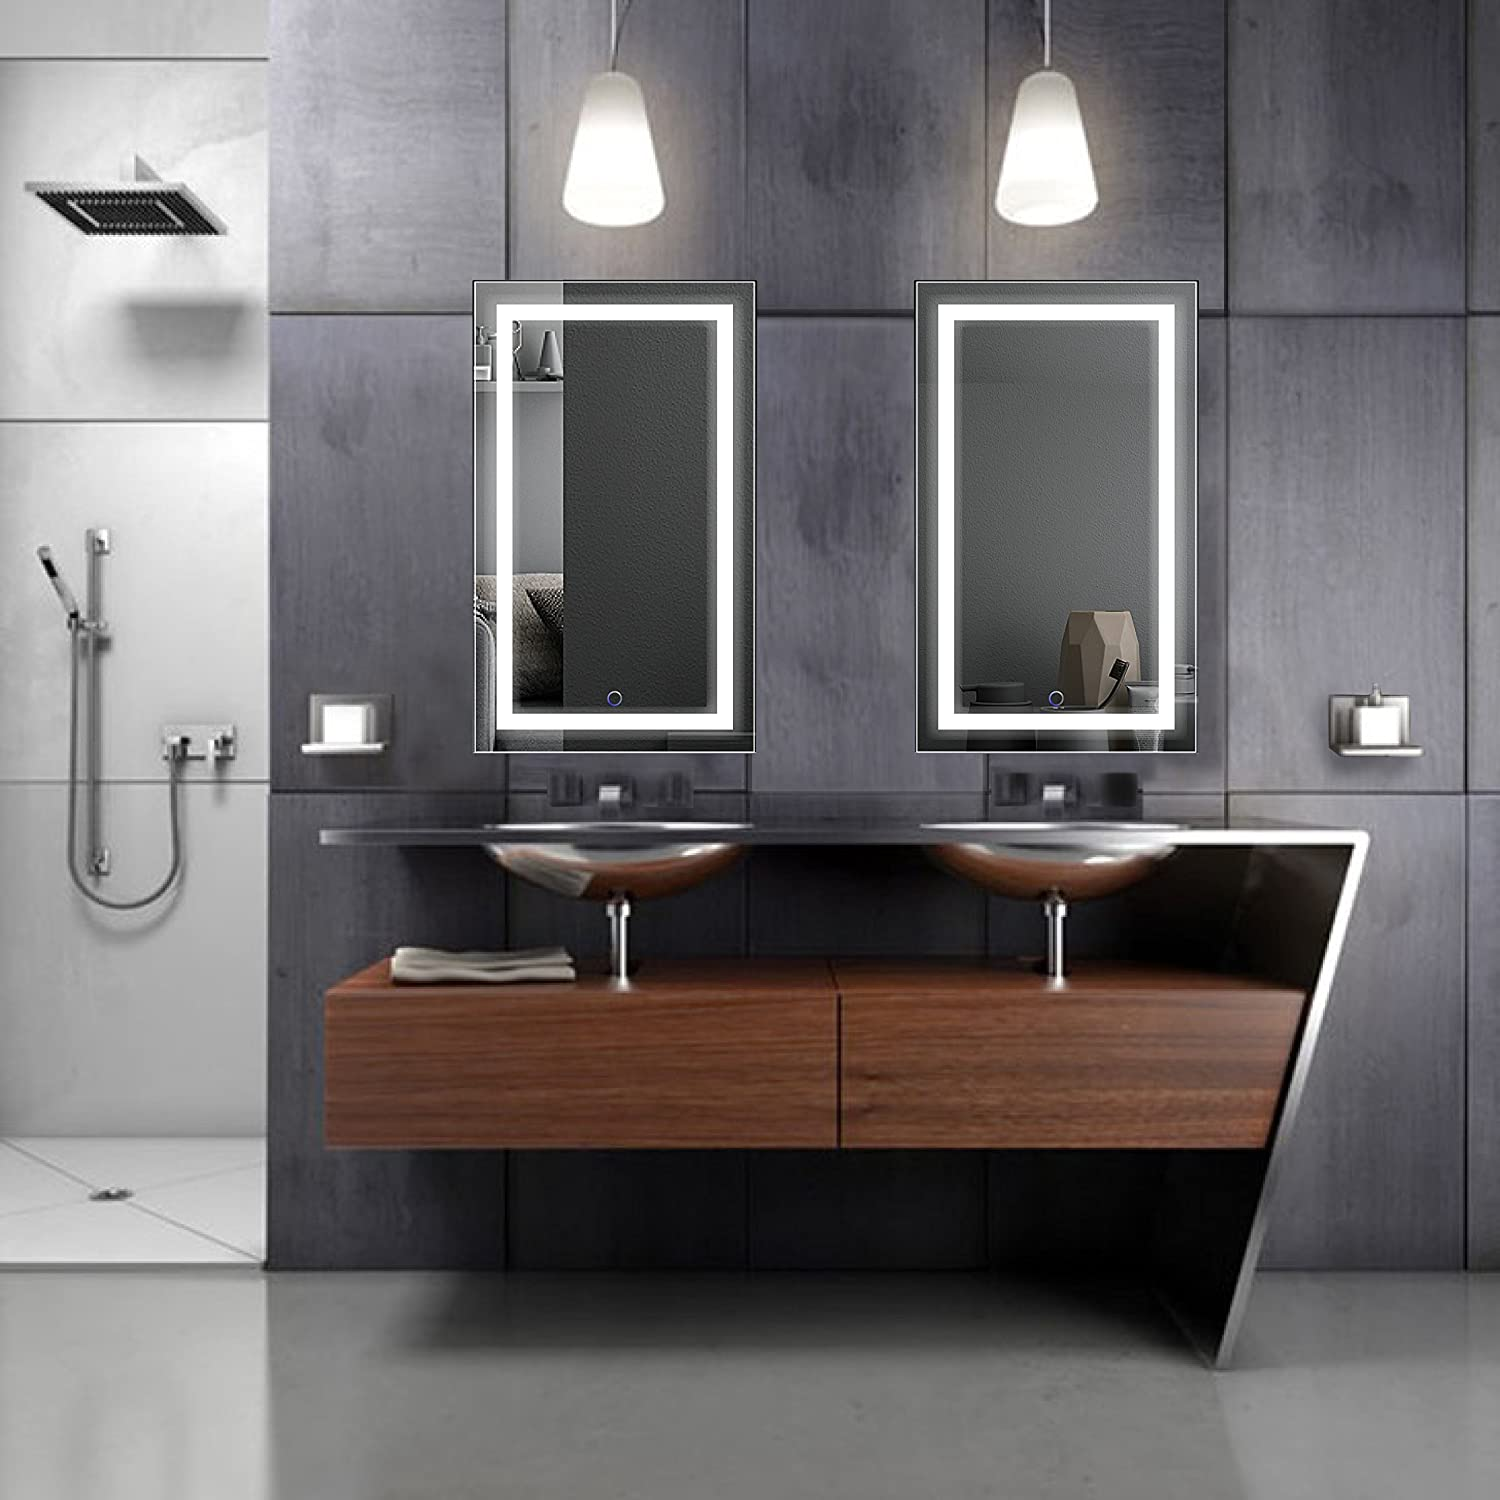 Backlit mirrors for bathrooms u s a together with boffis thirteen to - Amazon Com Led Bathroom Mirror 18 Inch X 30 Inch Lighted Vanity Mirror Includes Dimmer And Defogger Wall Mount Vertical Or Horizontal Installation